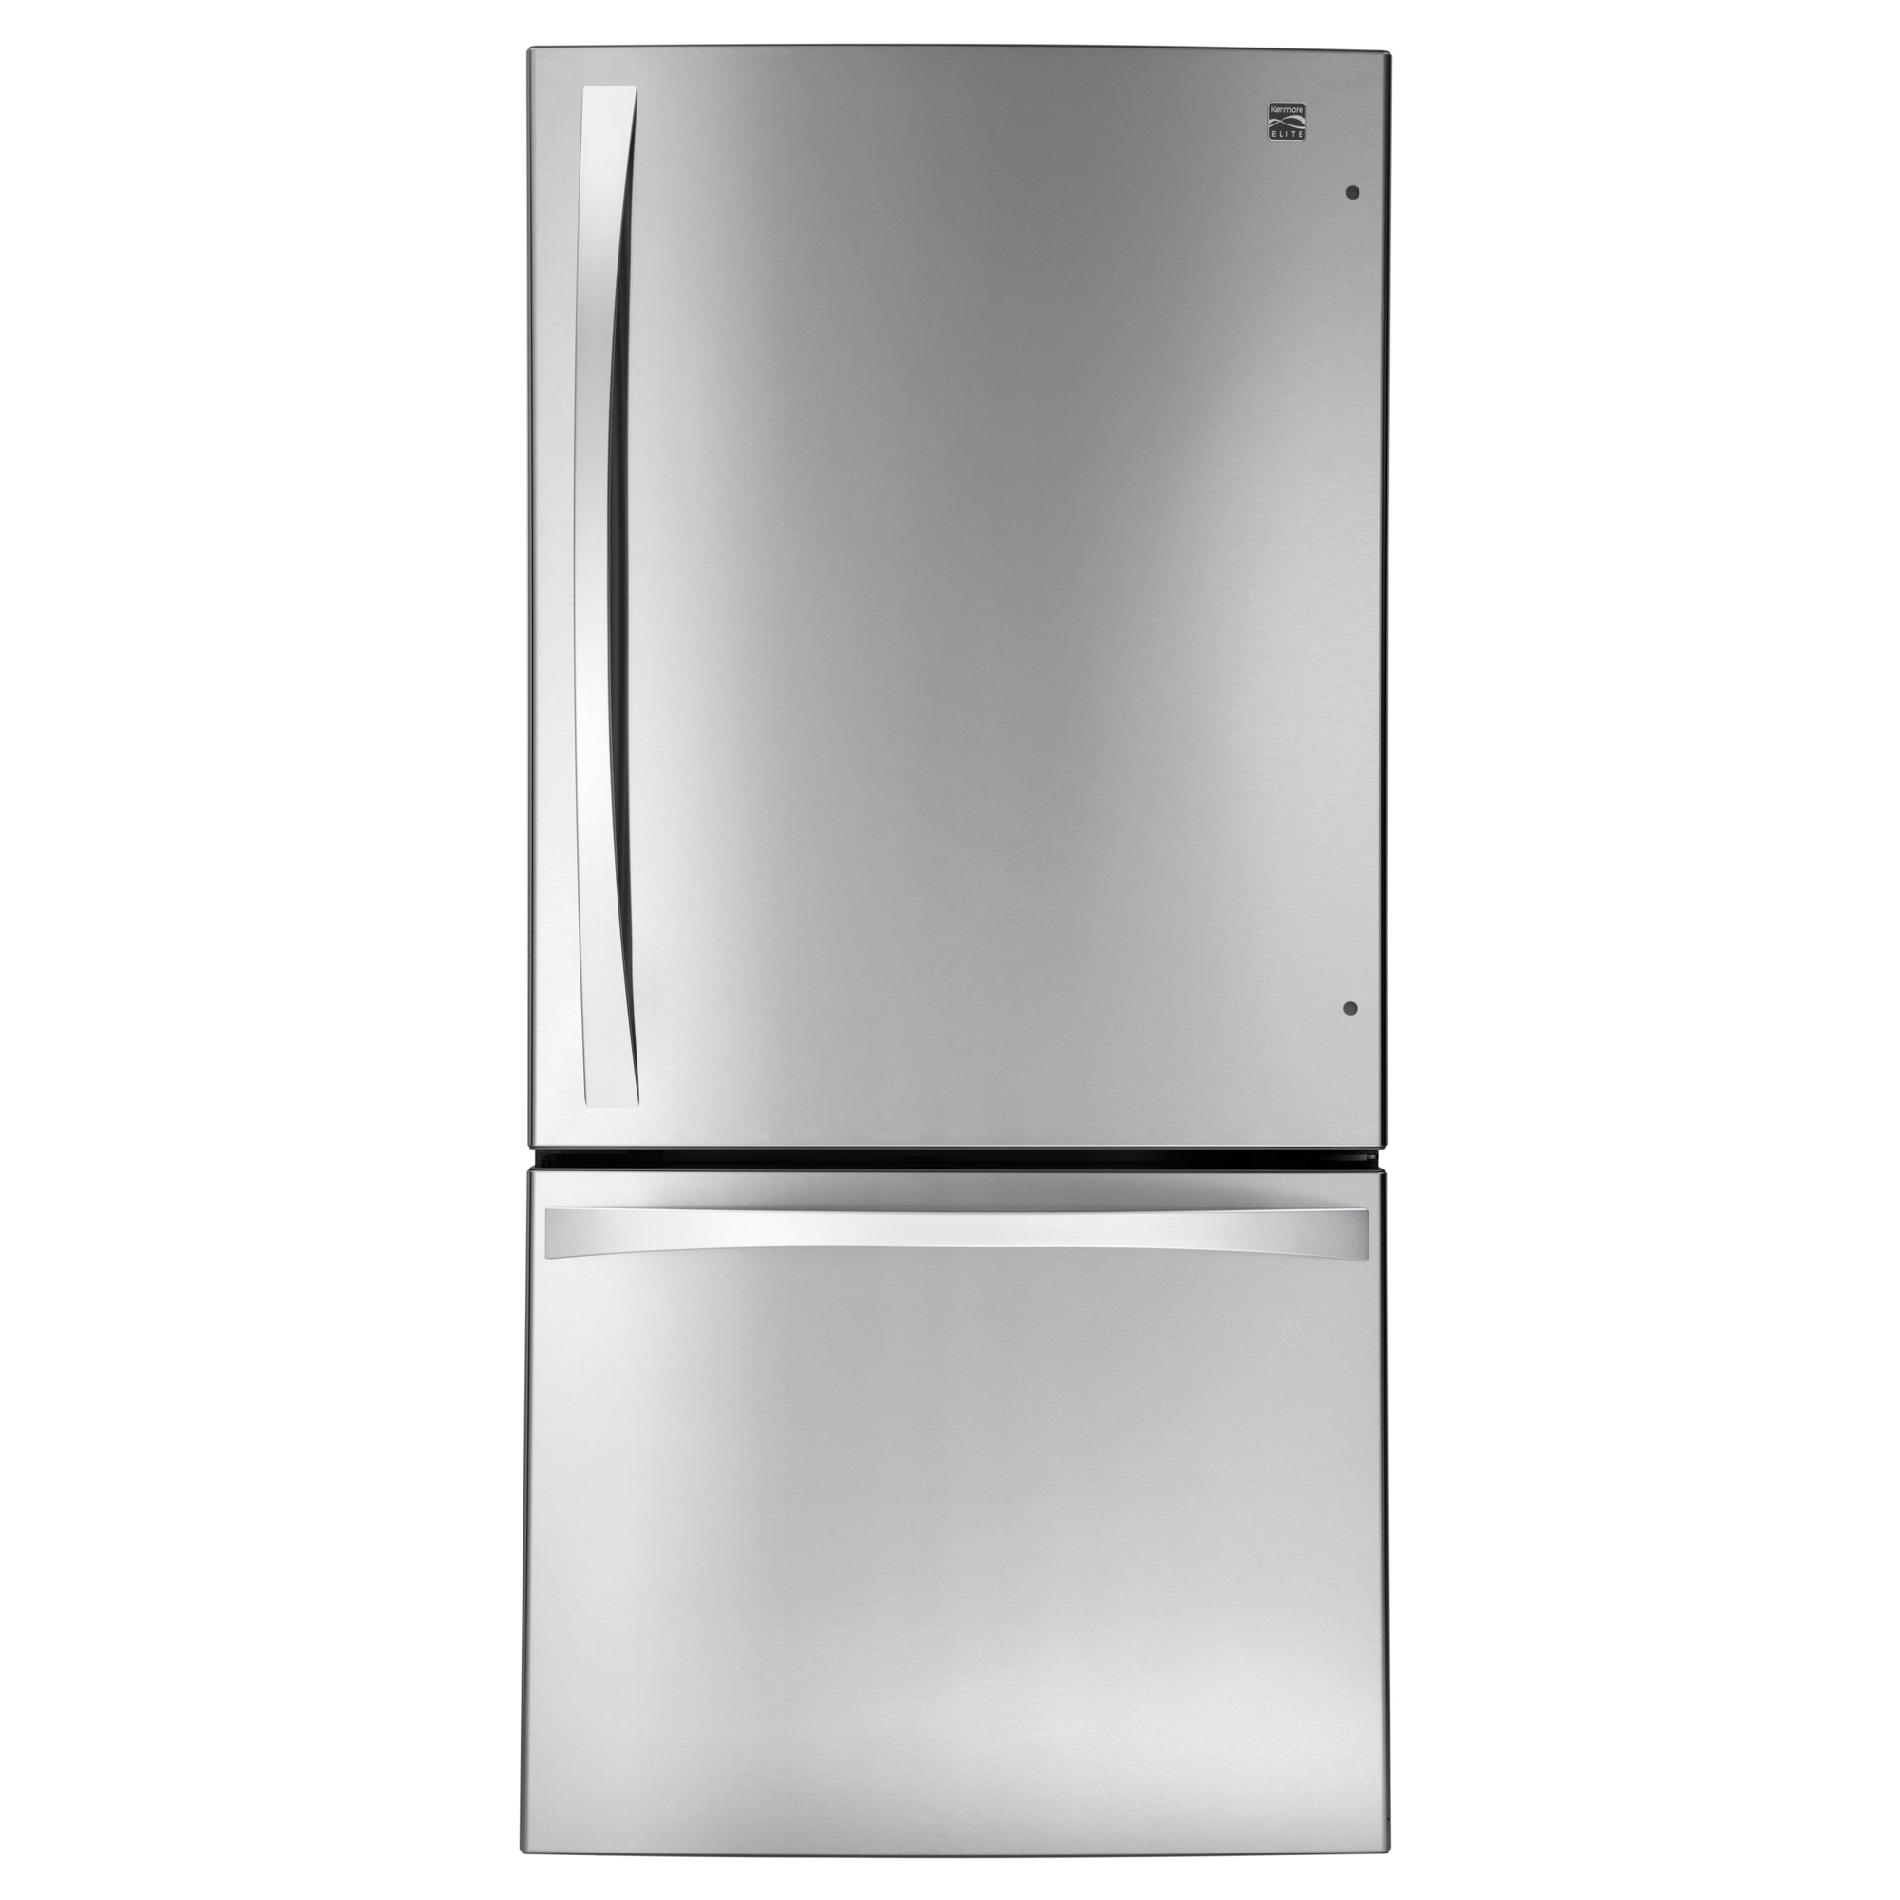 79043-24-1-cu-ft-Bottom-Freezer-Refrigerator%E2%80%94Stainless-Steel